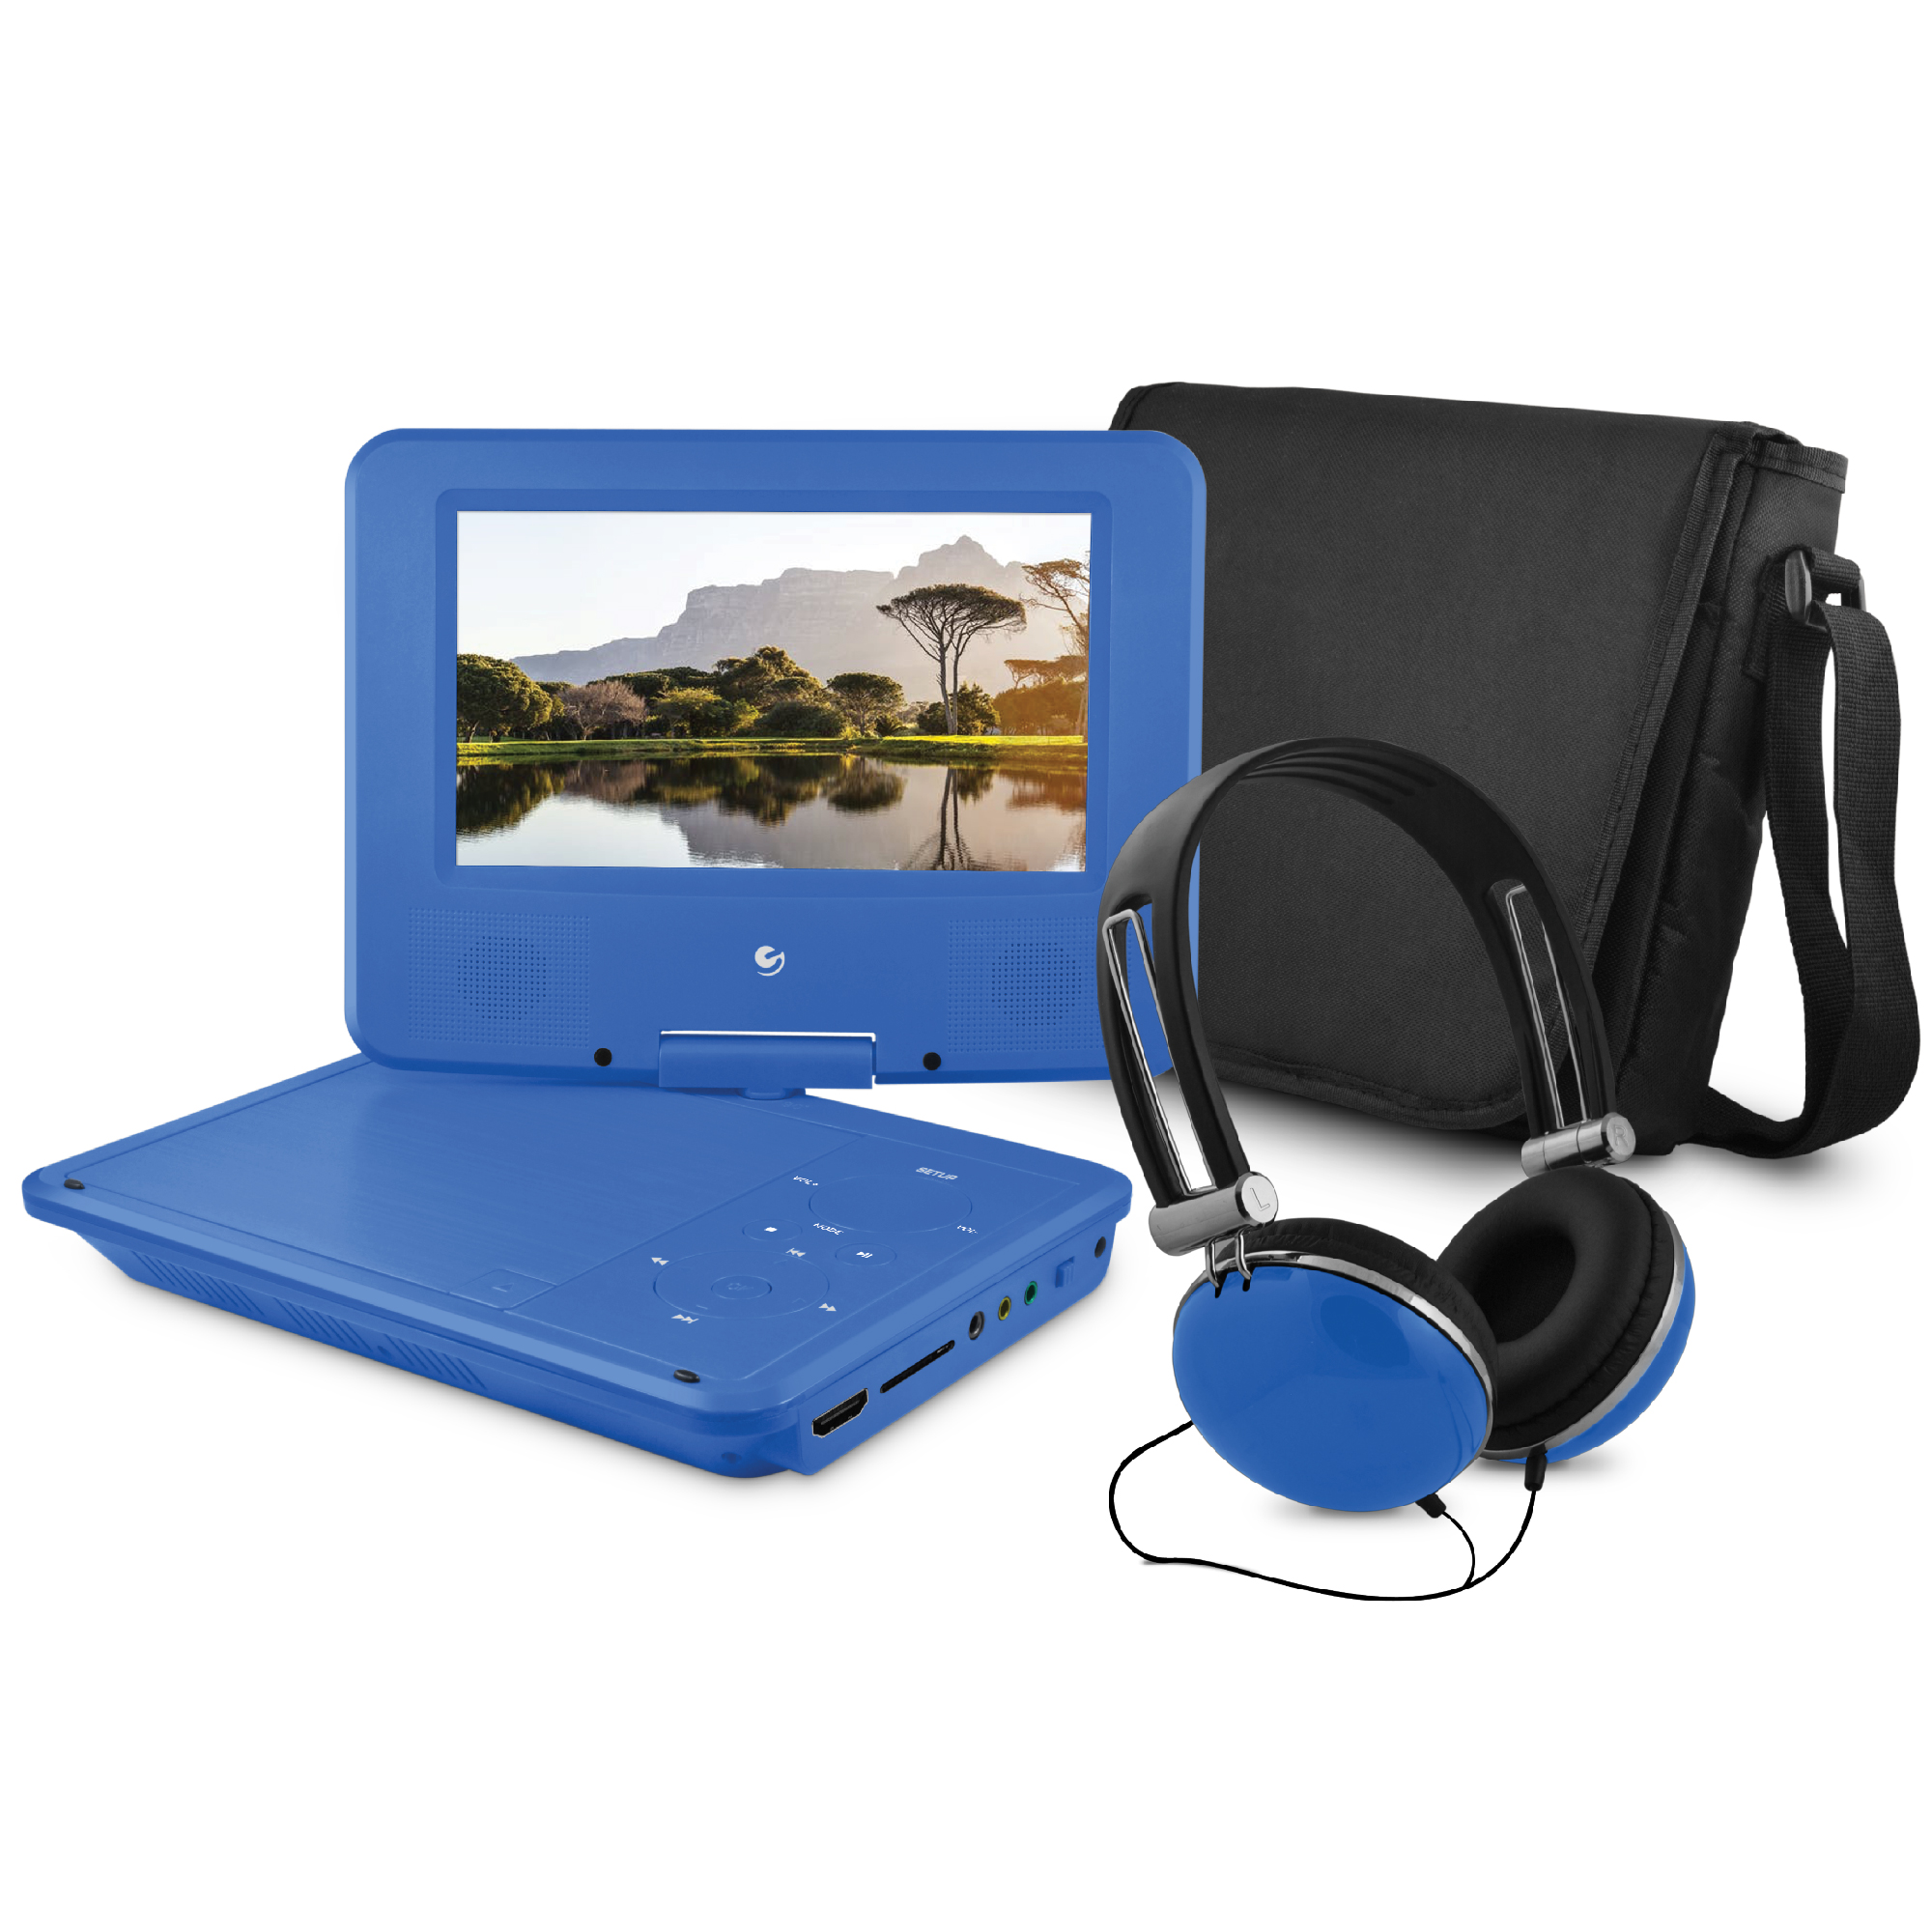 "Ematic 7"" Portable DVD Player Bundle with HDMI Input and ROKU Connectivity - Blue"